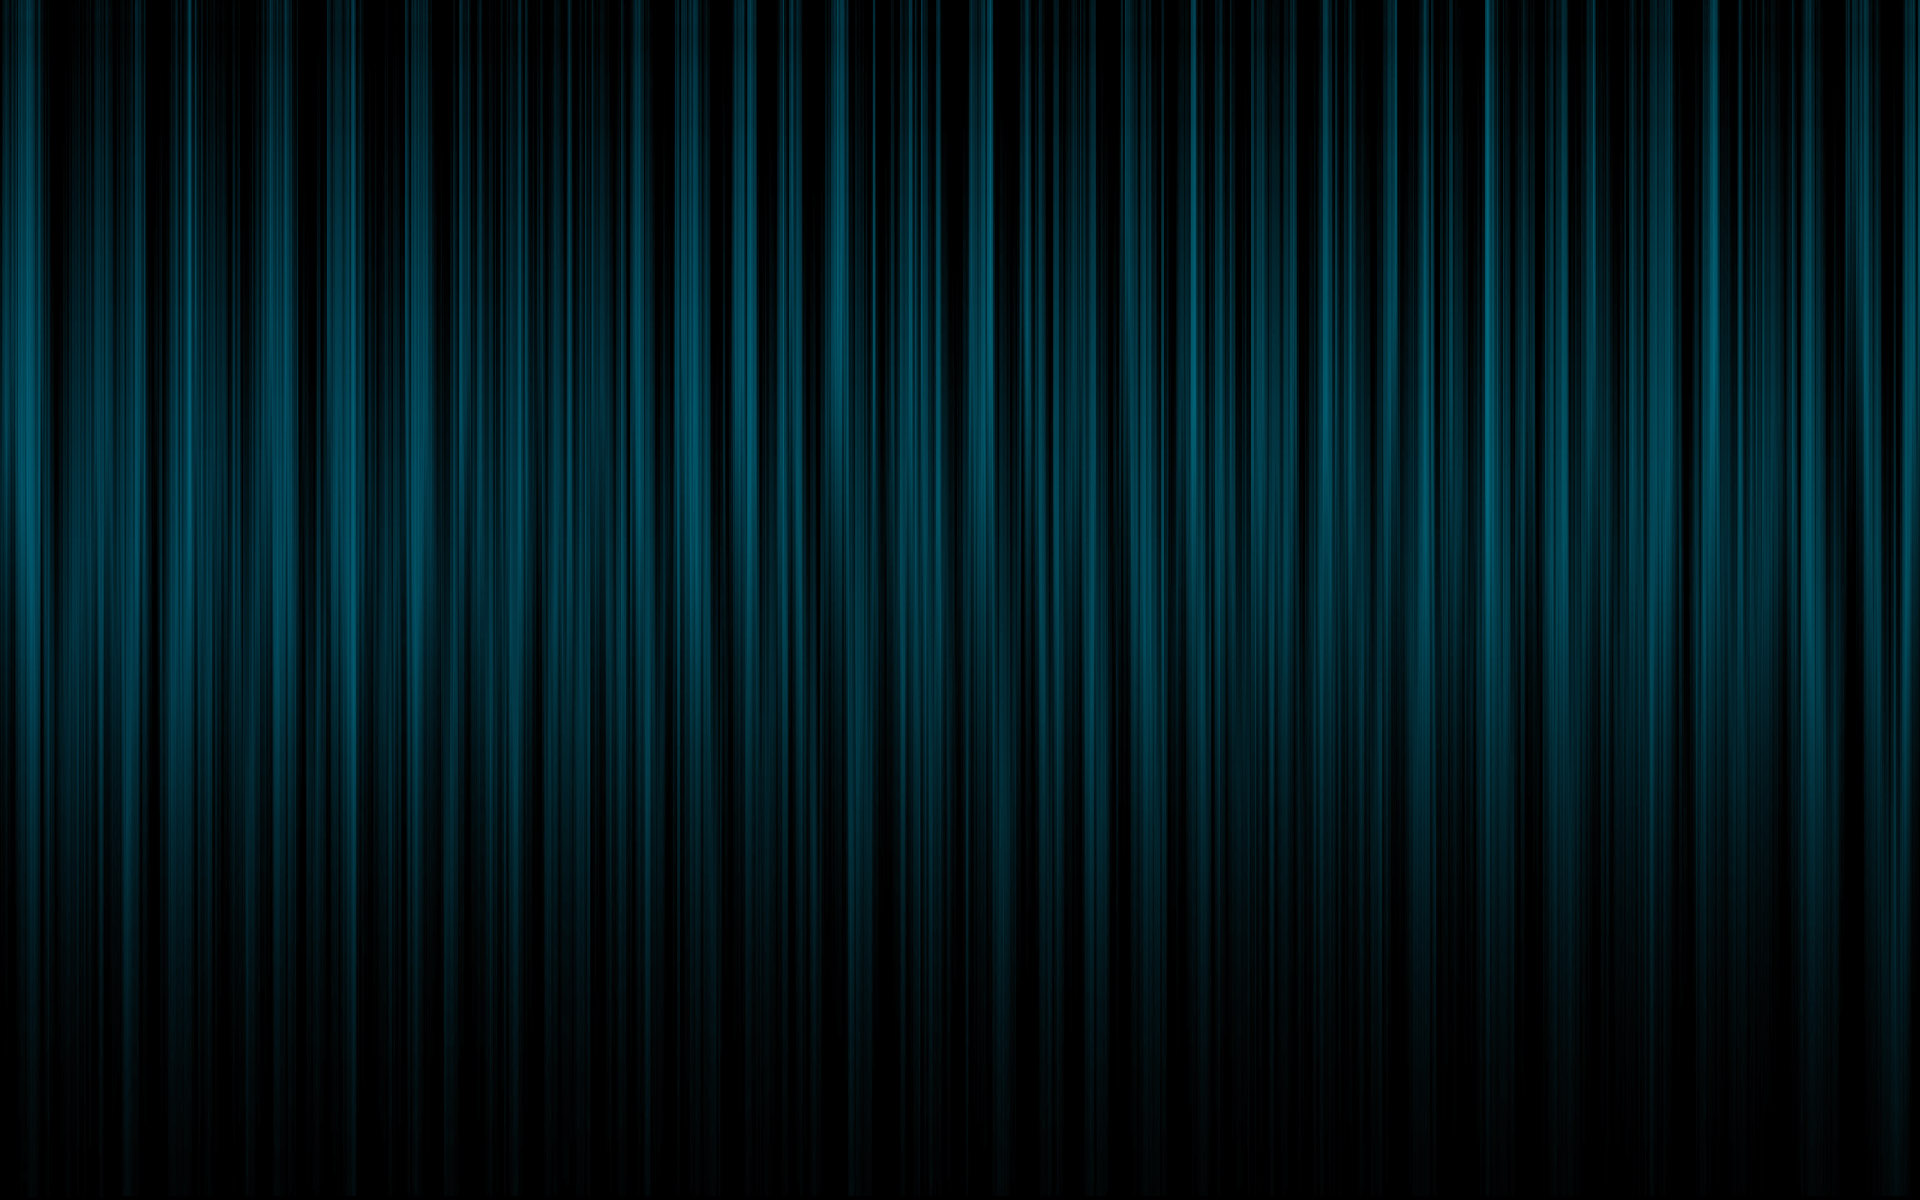 Colorful high-resolution background 25571